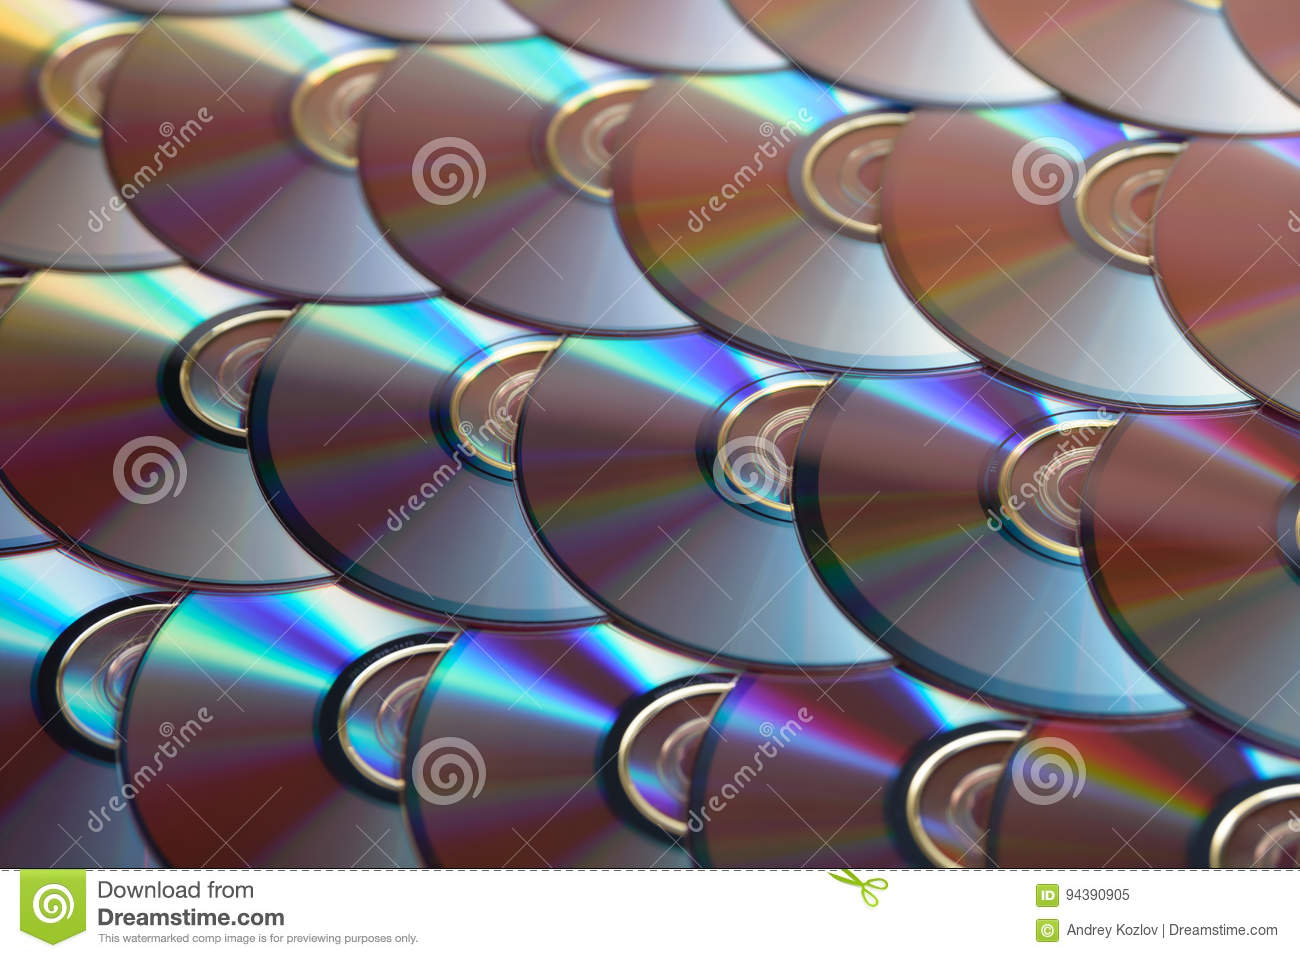 Fondo de los compact-disc Varios discos blu-ray cd del DVD Almacenamiento de datos digitales registrable o reescribible óptico